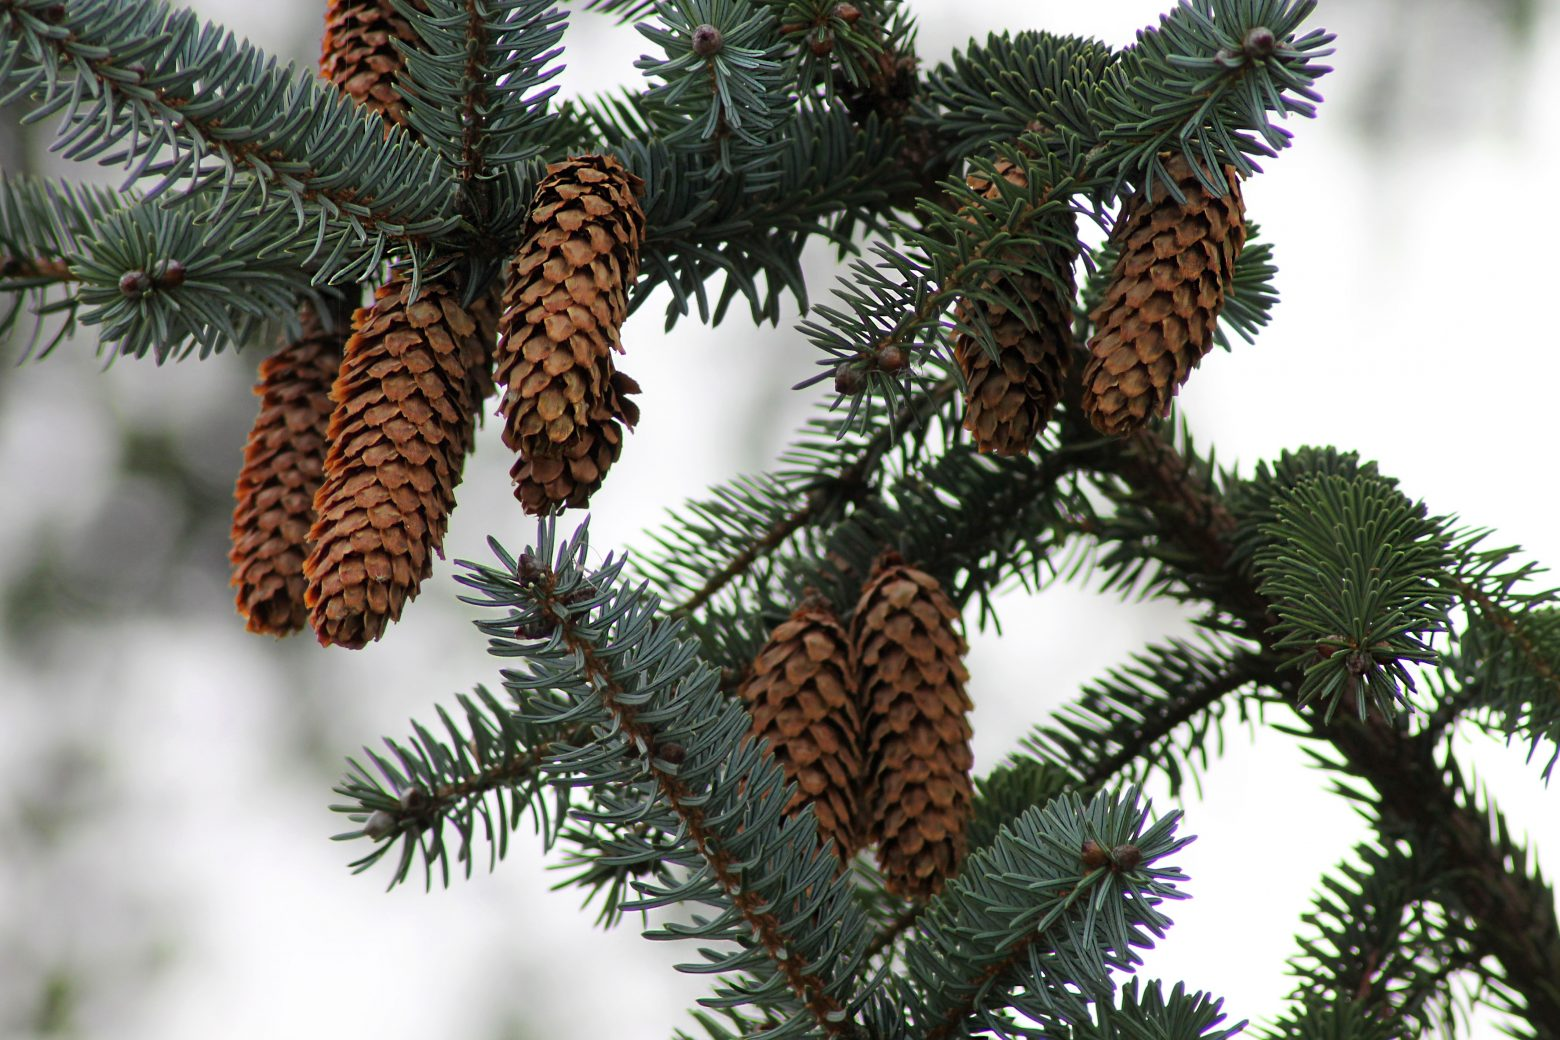 Spruce Needles and; Cones, Vancouver Island, BC.